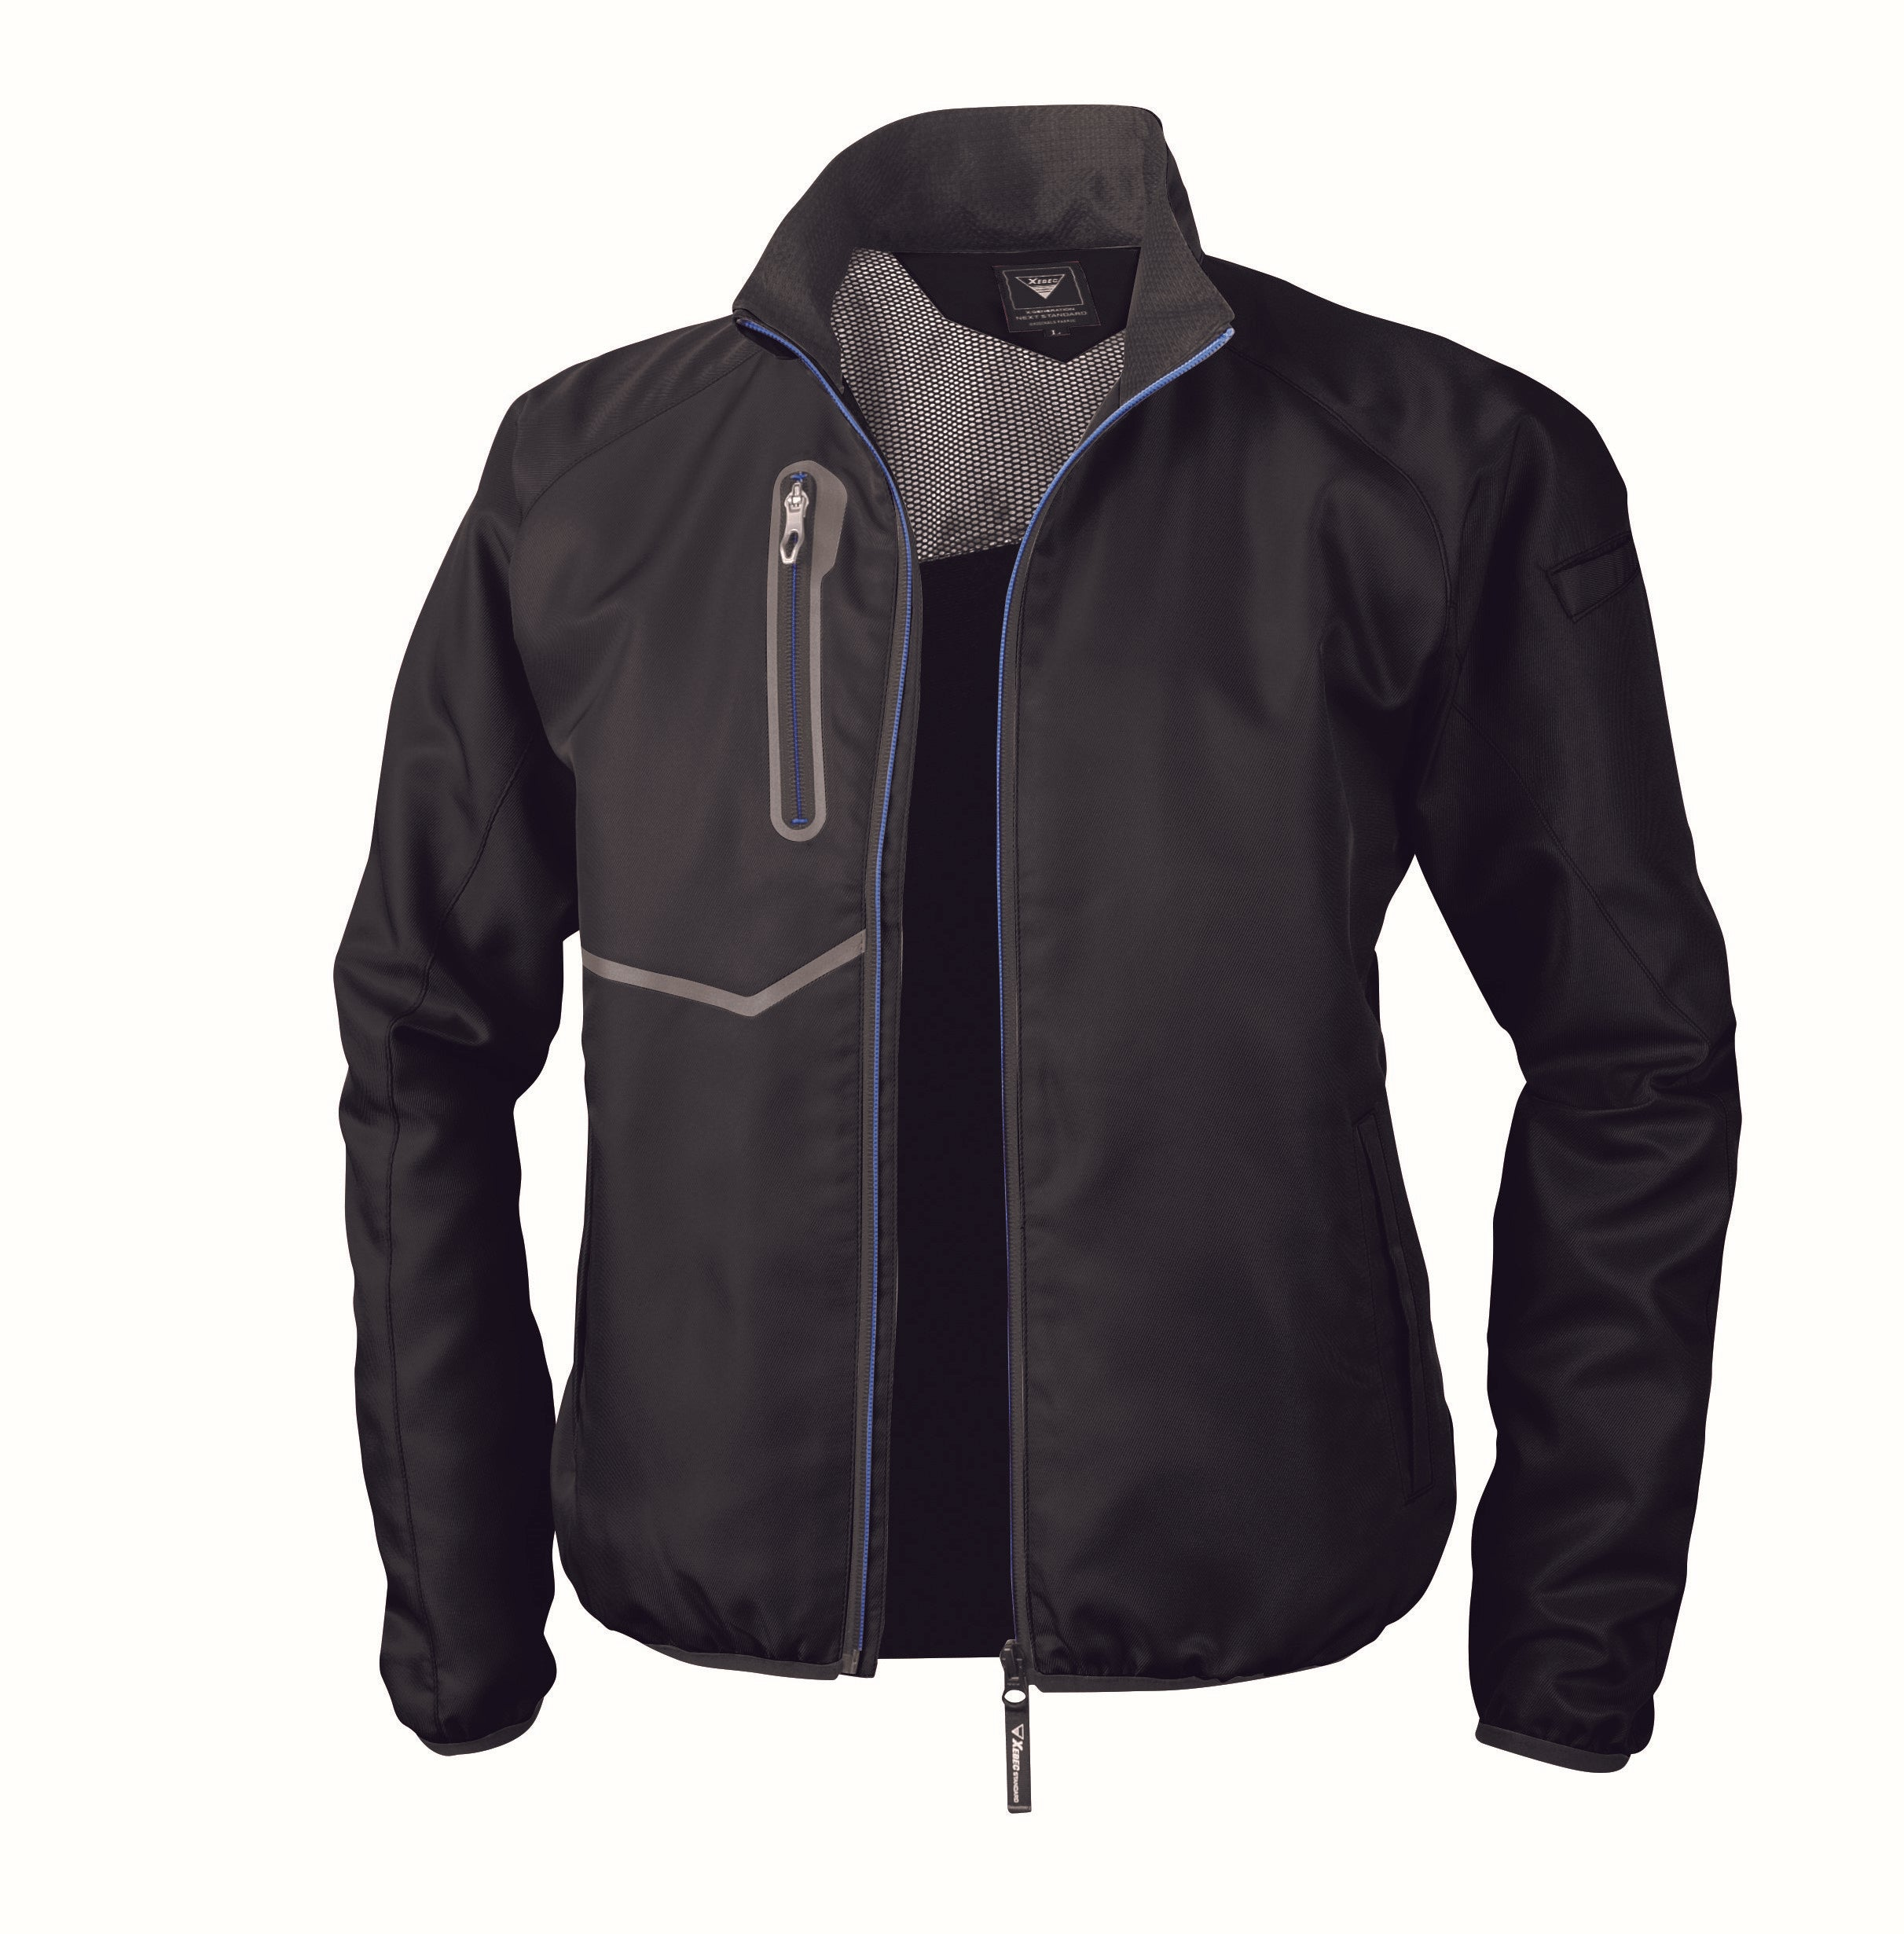 XEBEC 162 Light cold protection Blouson